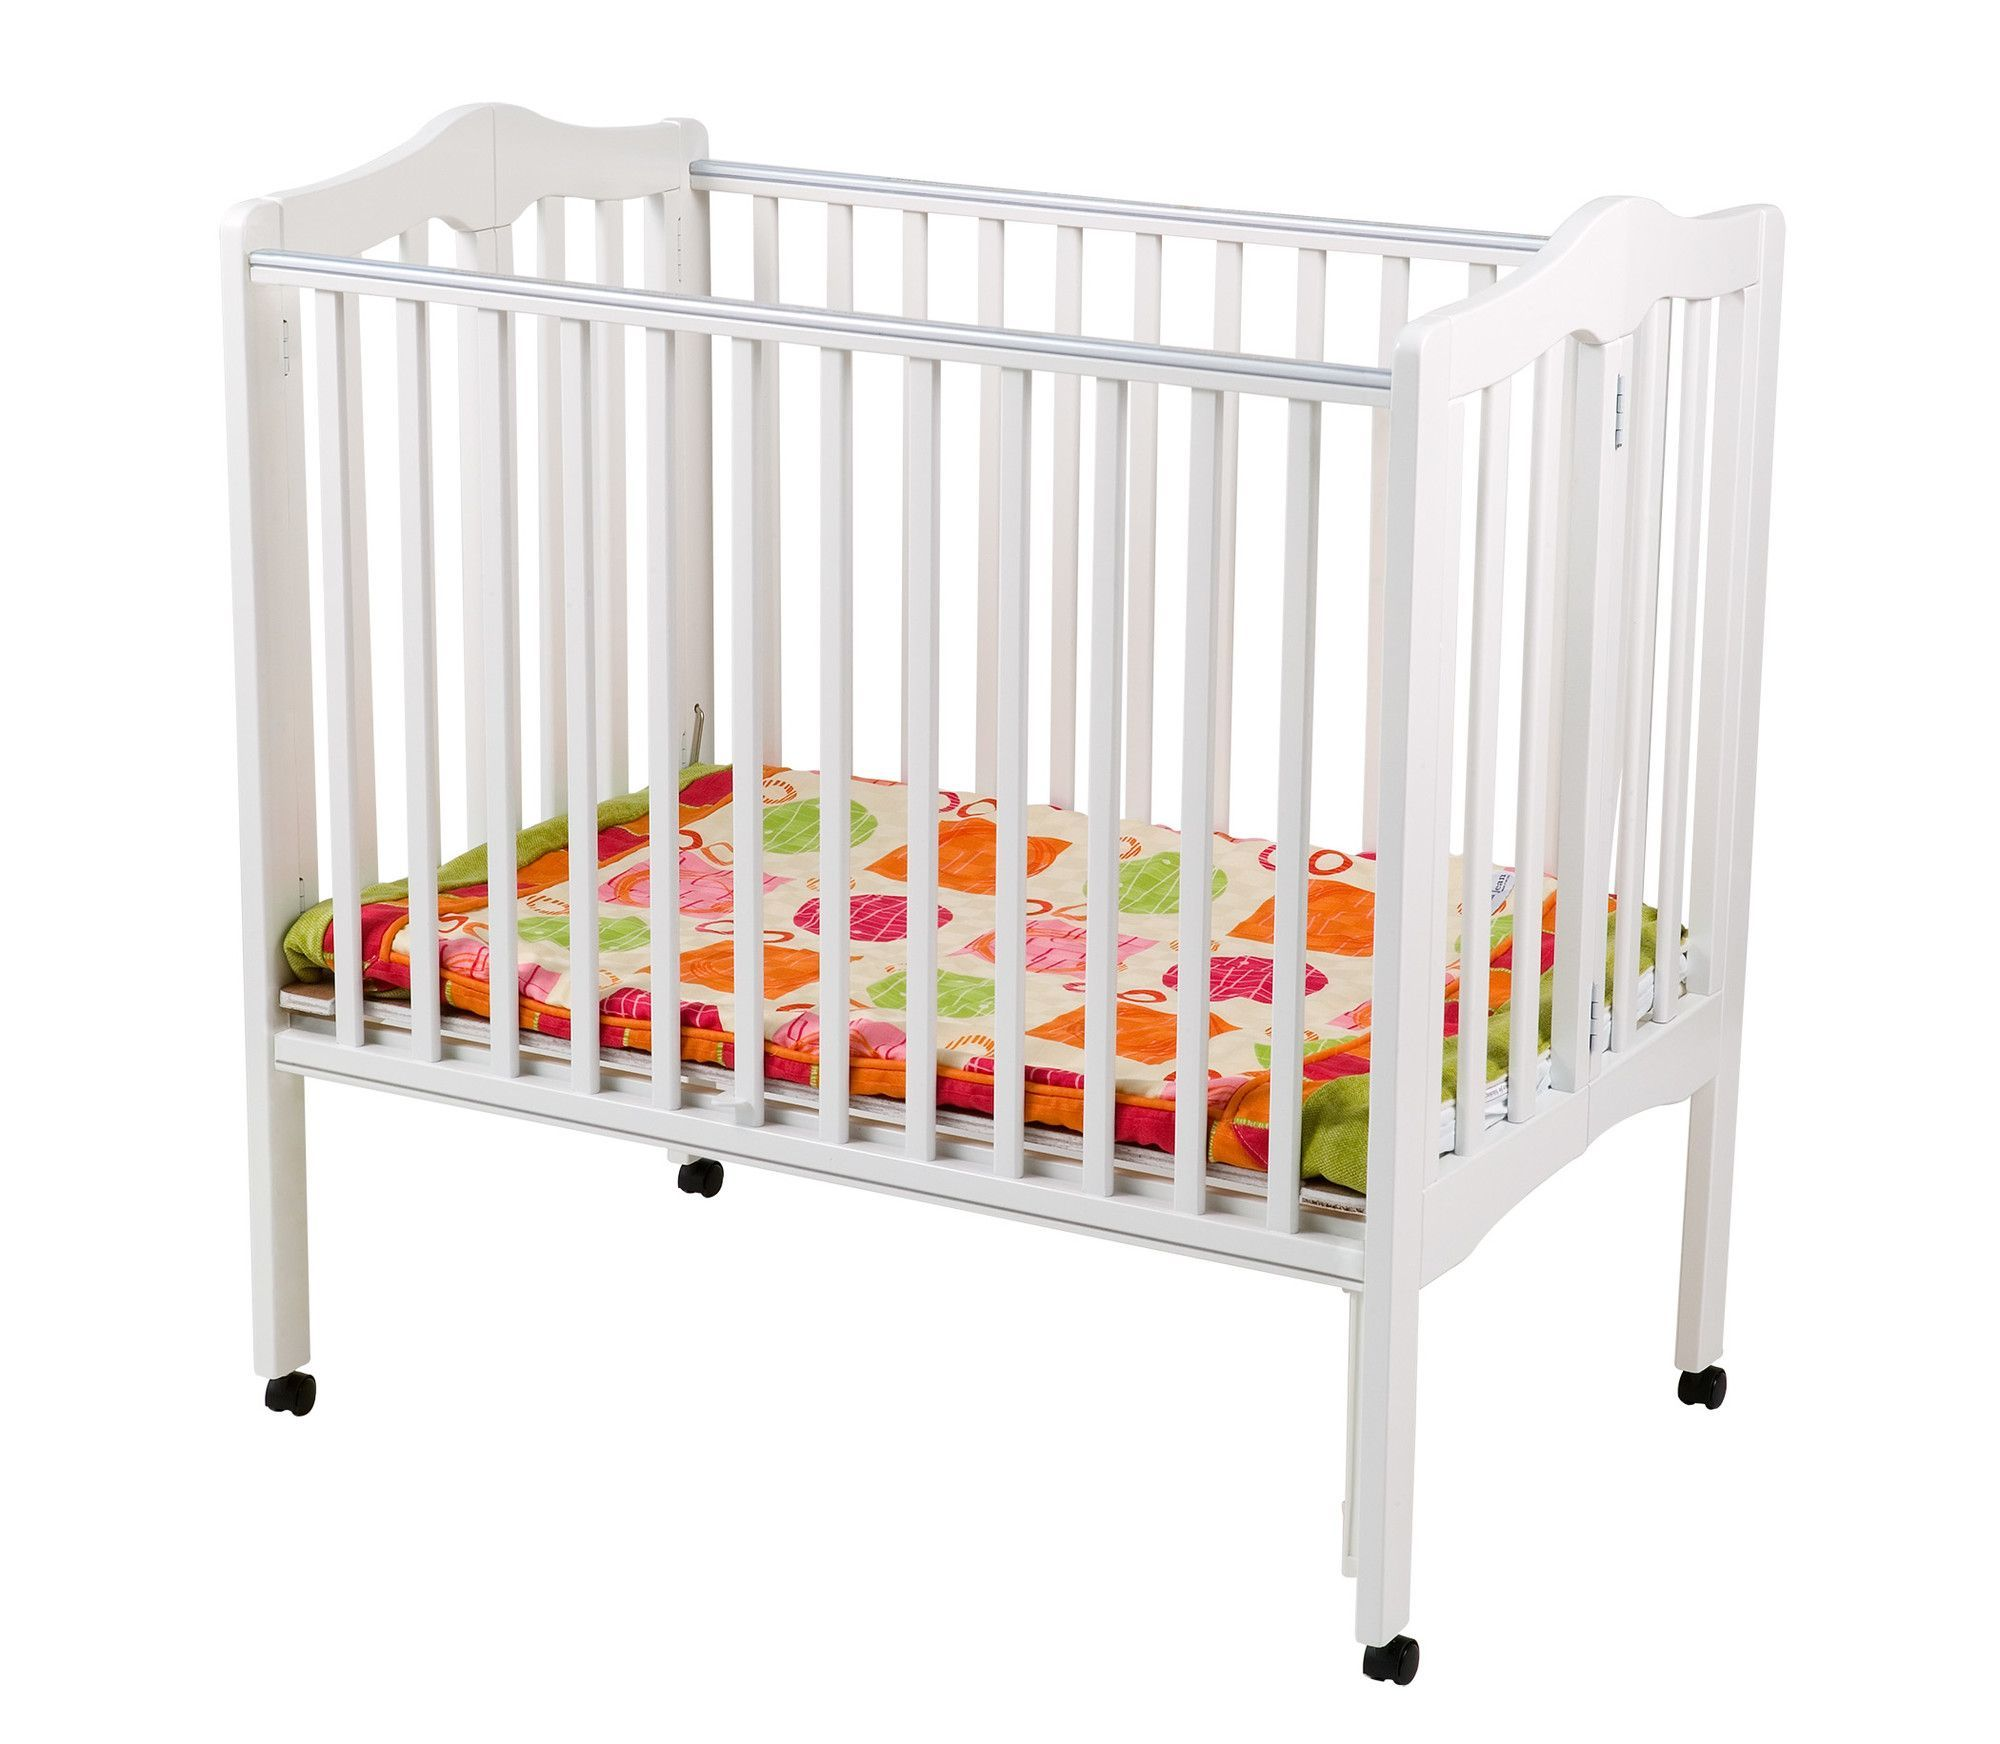 Portable Mini Convertible Crib with Mattress | Cribs | Pinterest